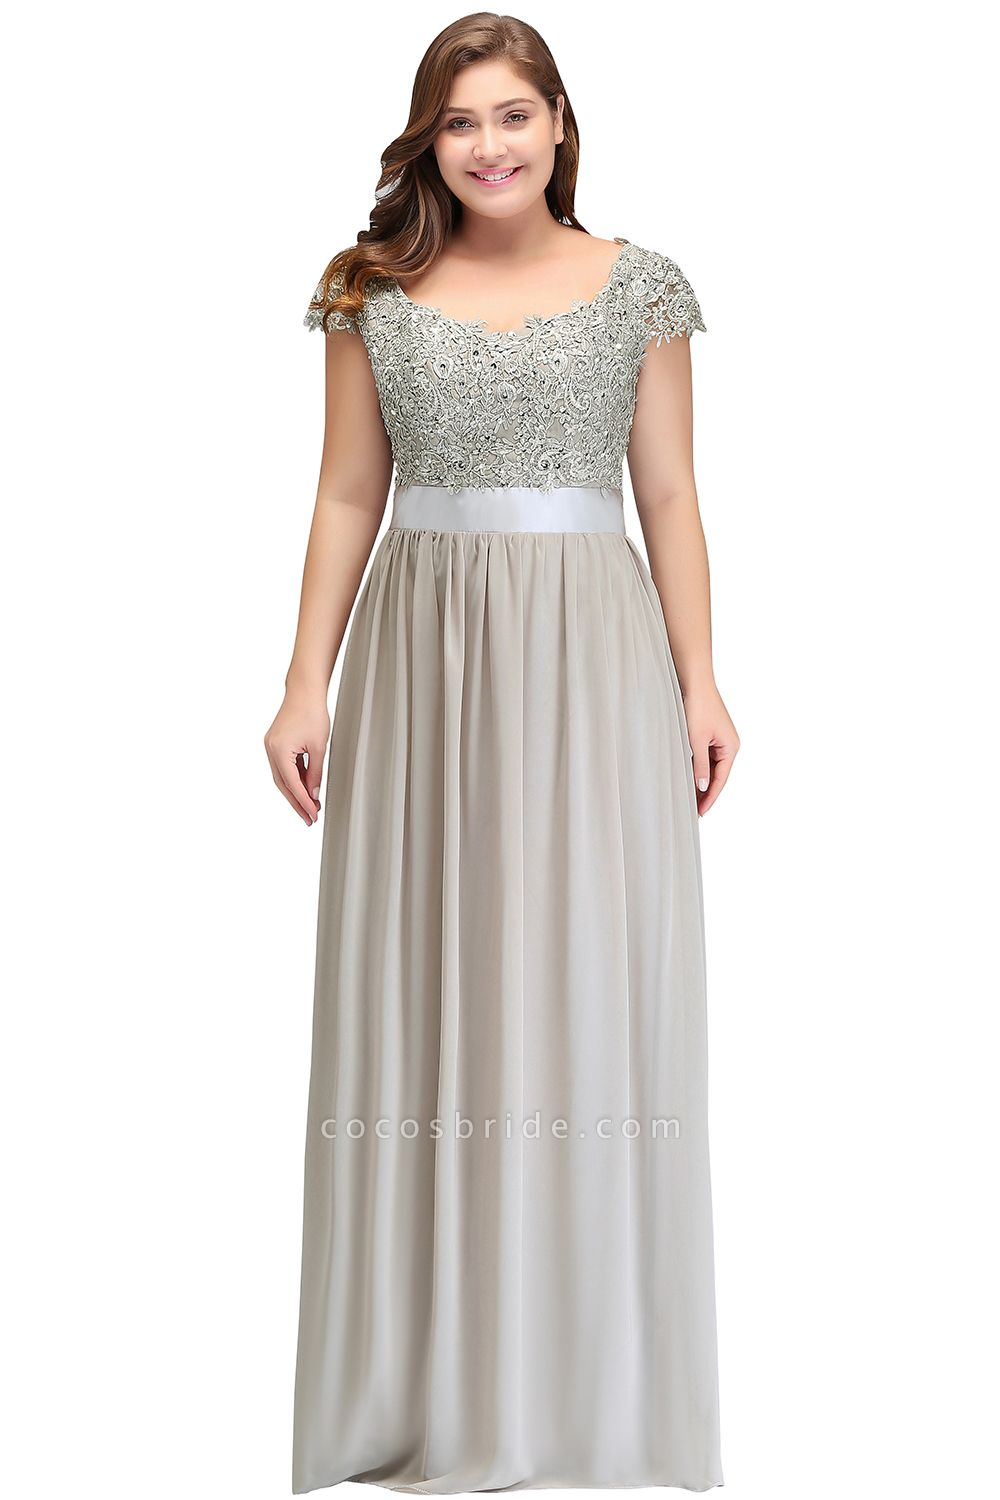 HOLLAND | A-Line Scoop Floor Length Cap Sleeves Appliques Silver Plus Size Evening Dresses with Sash